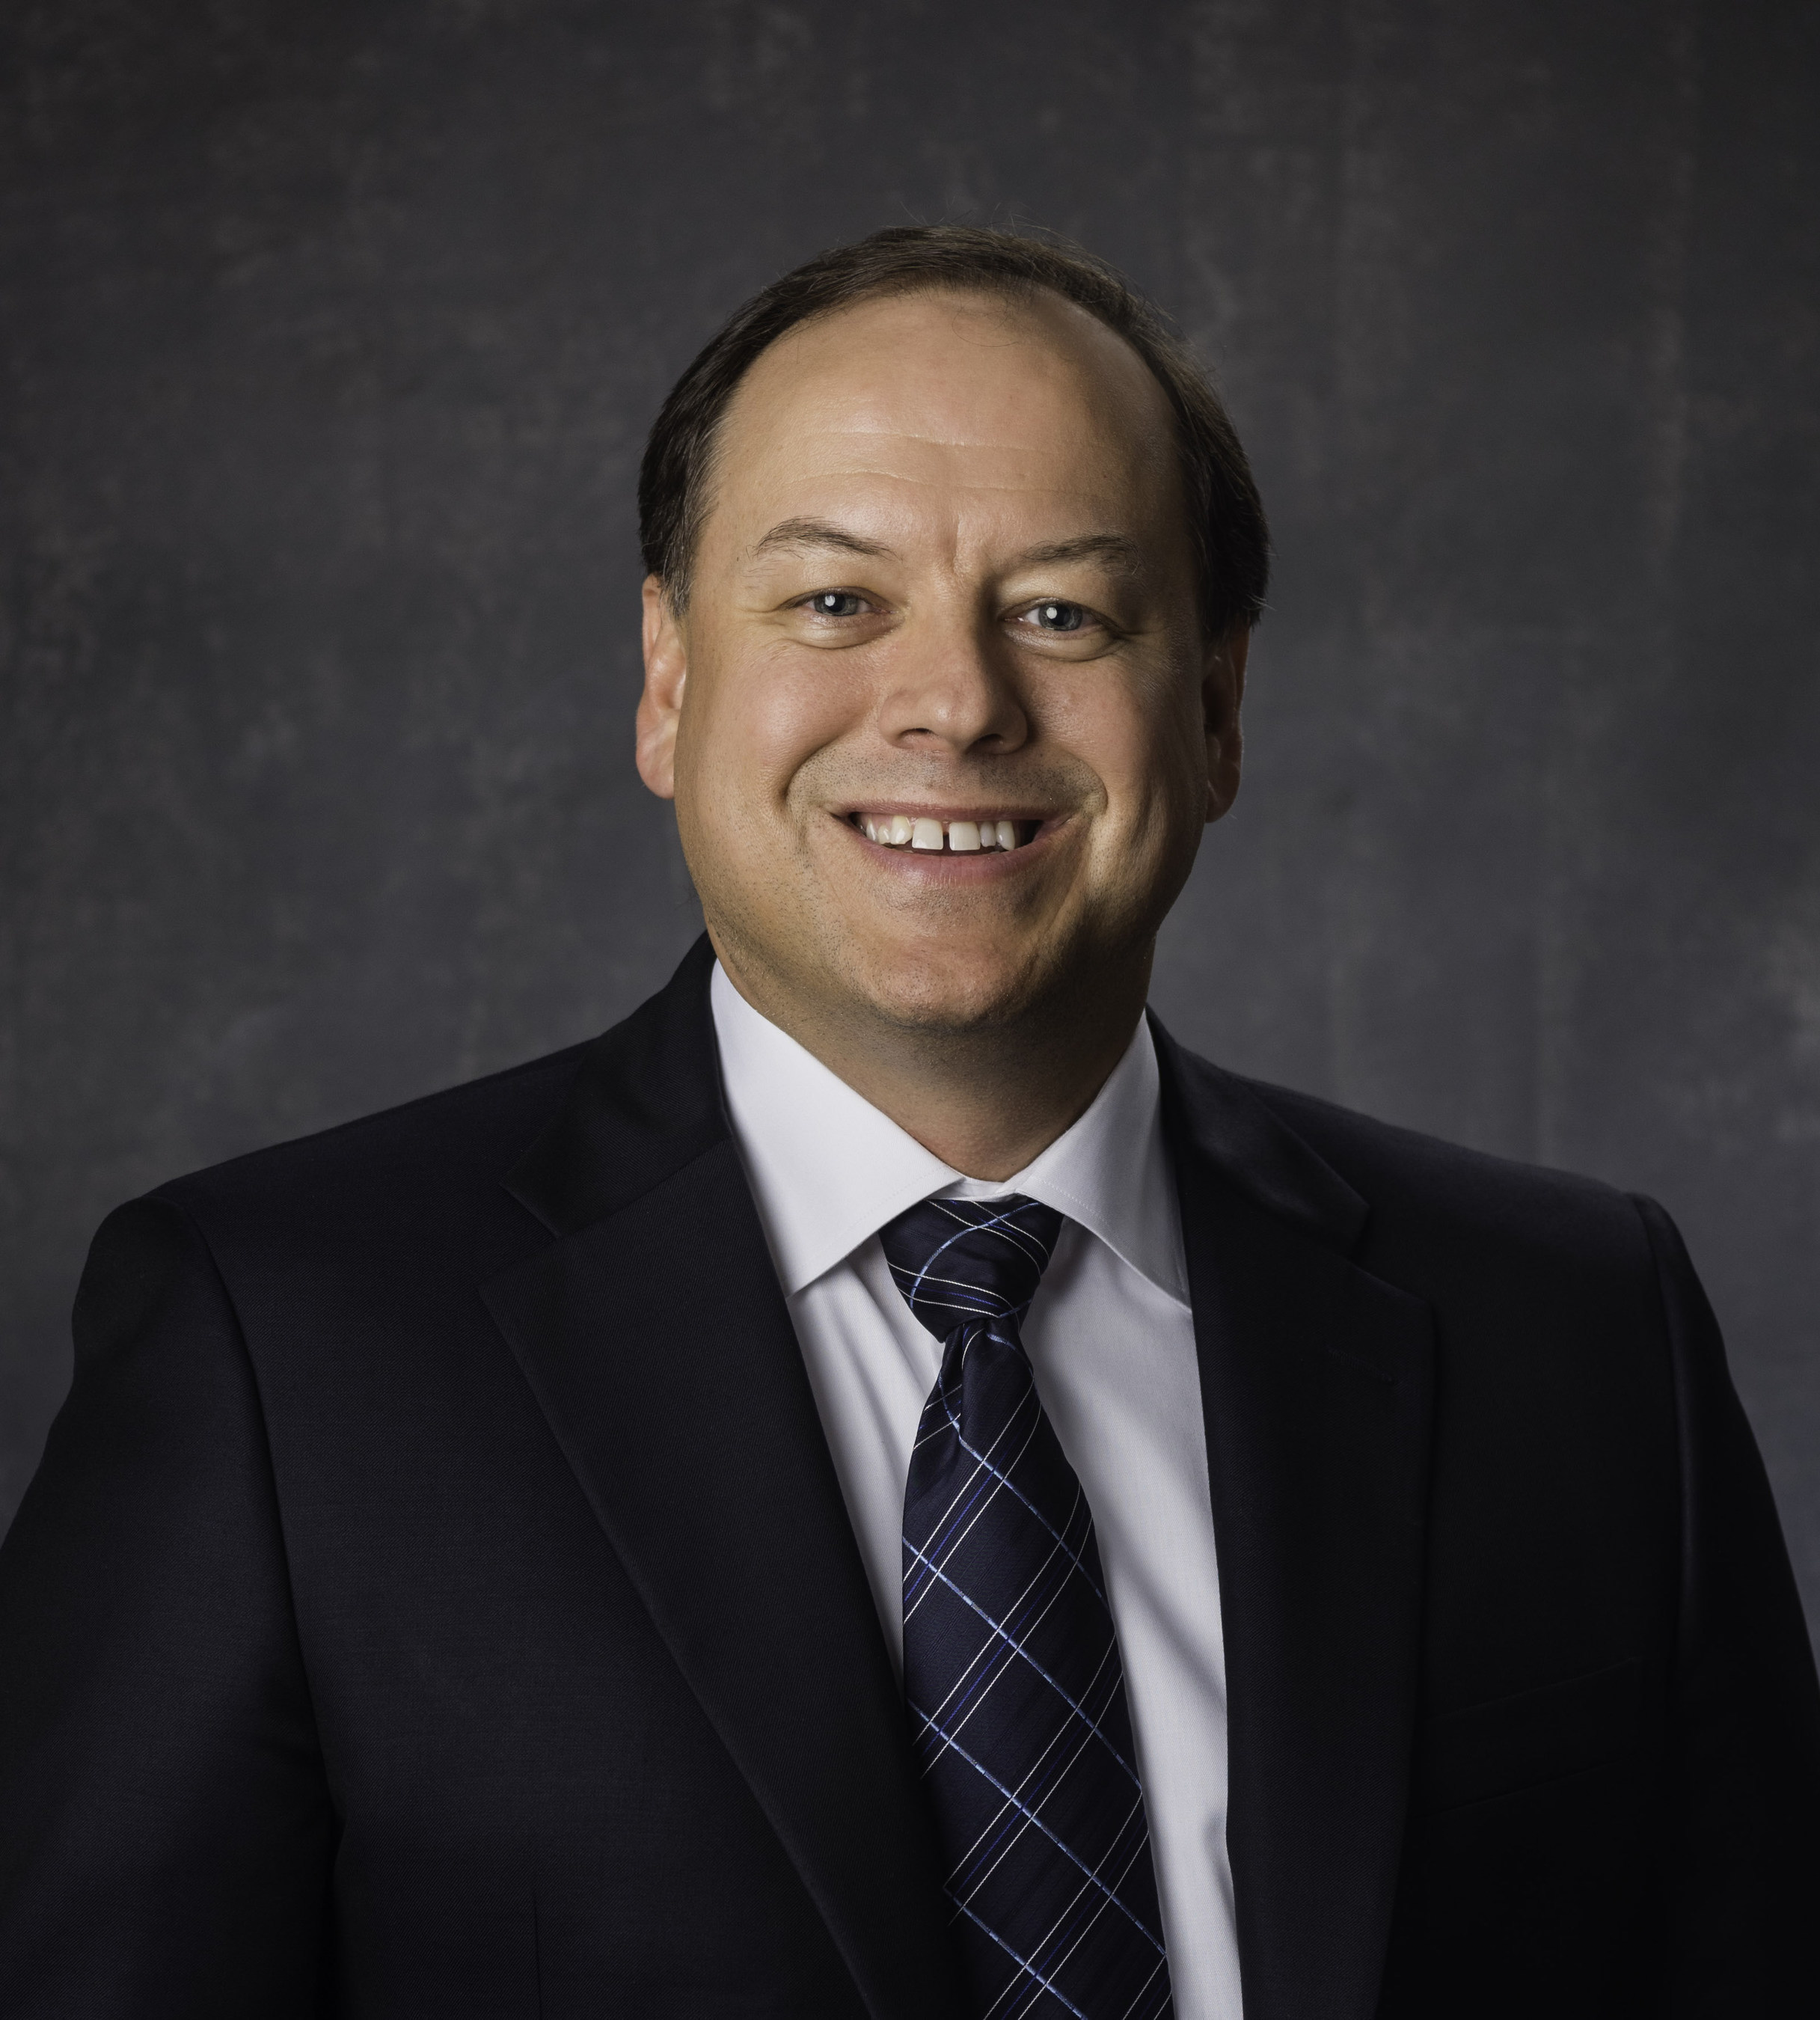 Emerus Holdings Inc. has named Craig Goguen as its new CEO. Goguen's experience as a CEO and leader of high-growth, multi-state healthcare companies further enhances Emerus' position as the premier partner of choice for national healthcare systems desiring to expand their healthcare offerings.